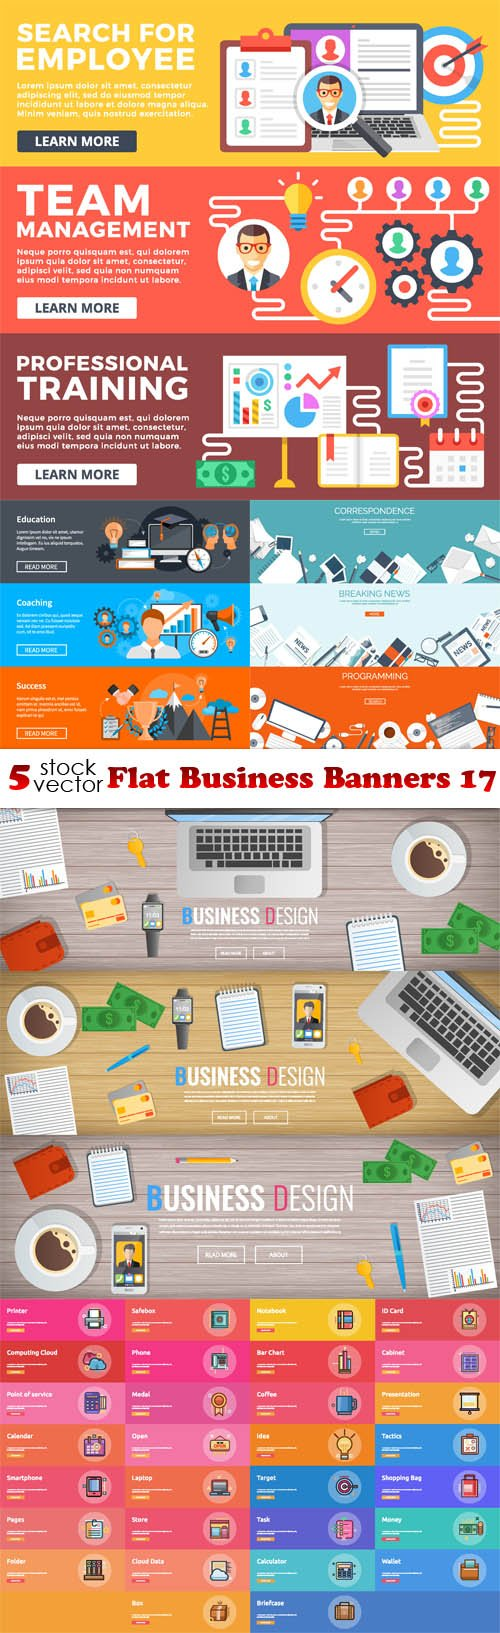 Vectors - Flat Business Banners 17